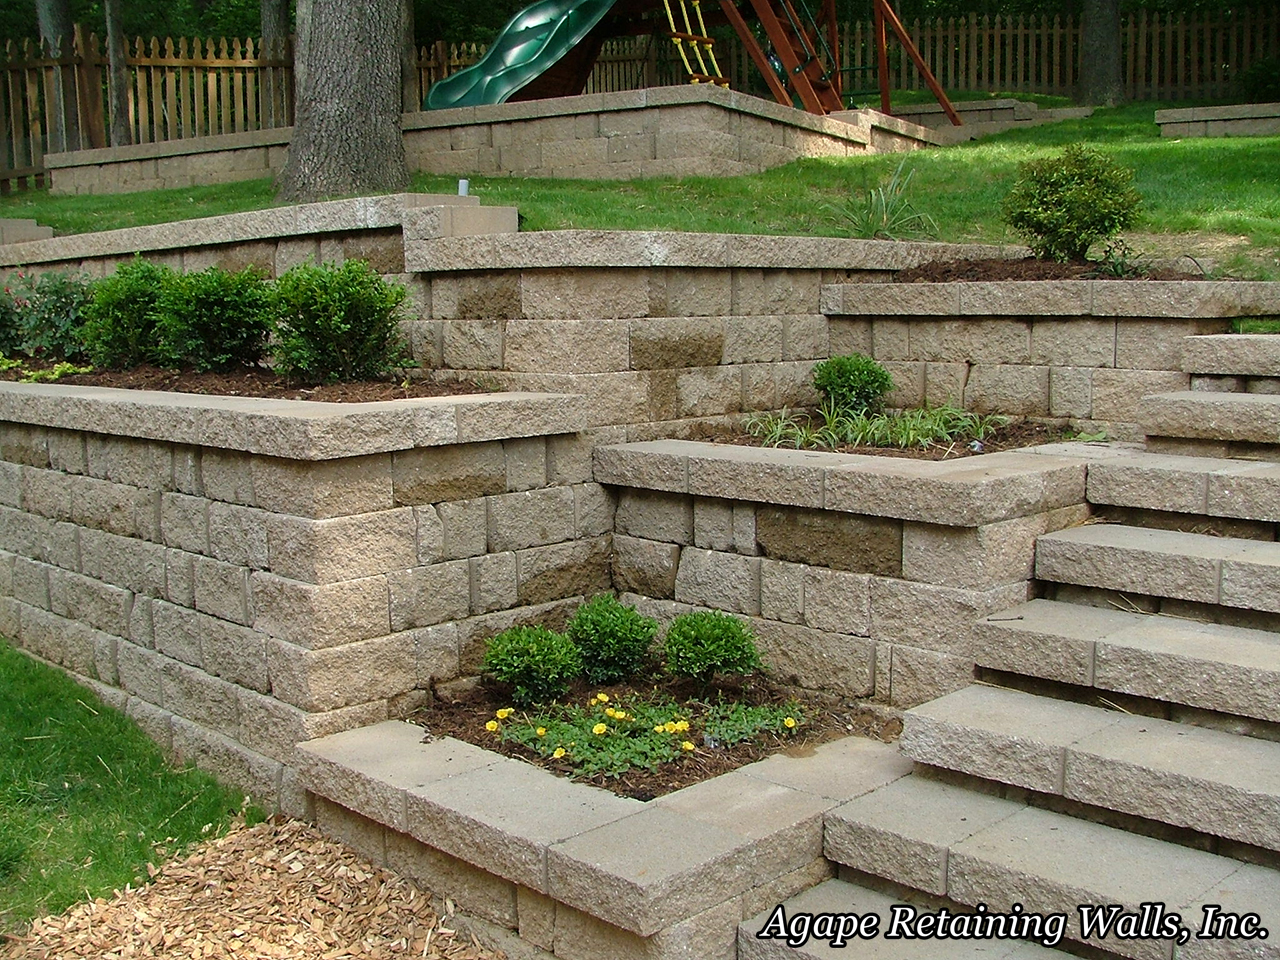 Landscaping With Walls : Agape retaining walls inc terrace photo album